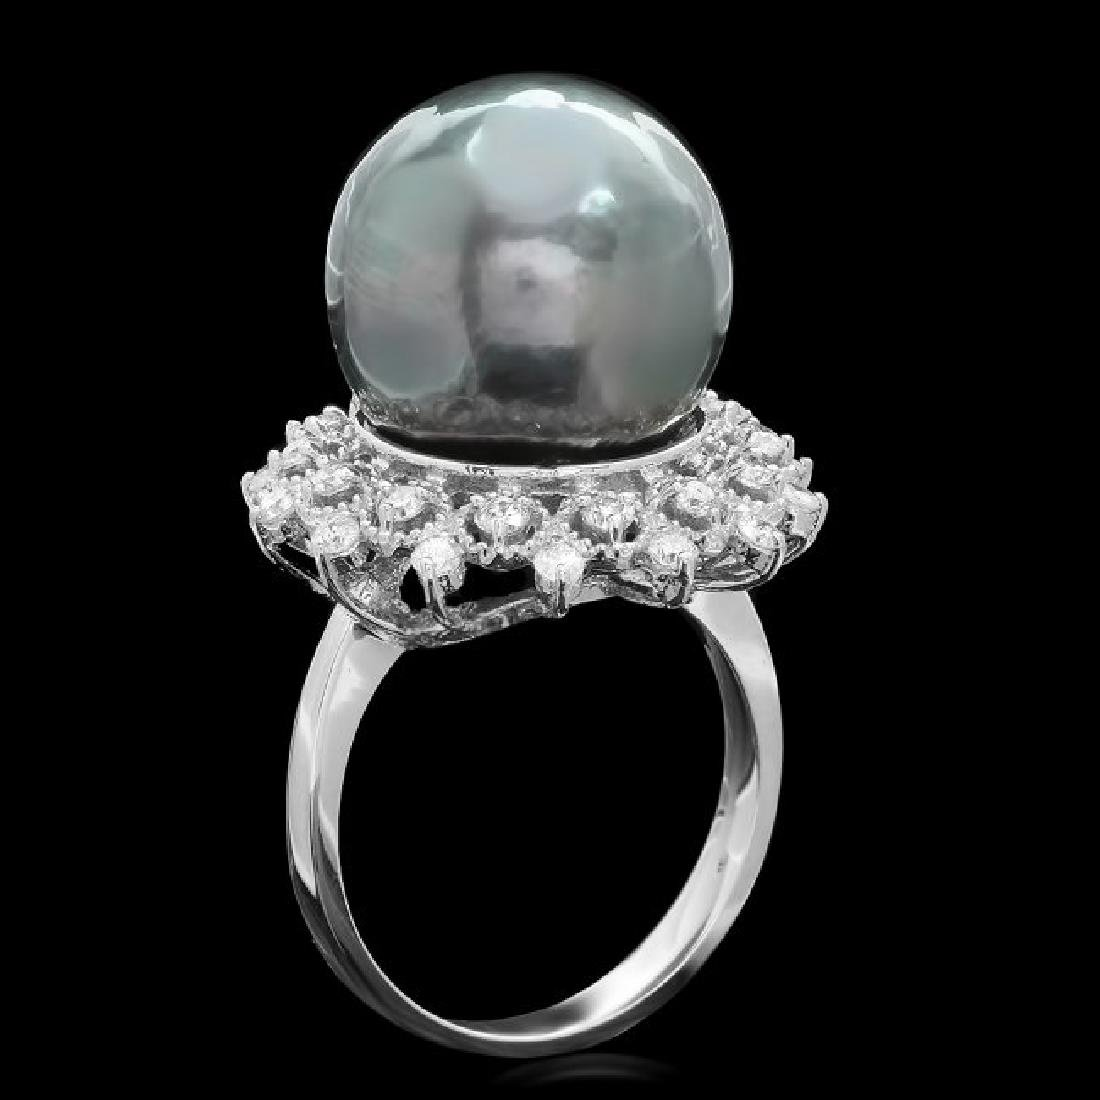 14k White Gold 14mm Pearl 0.70ct Diamond Ring - 2